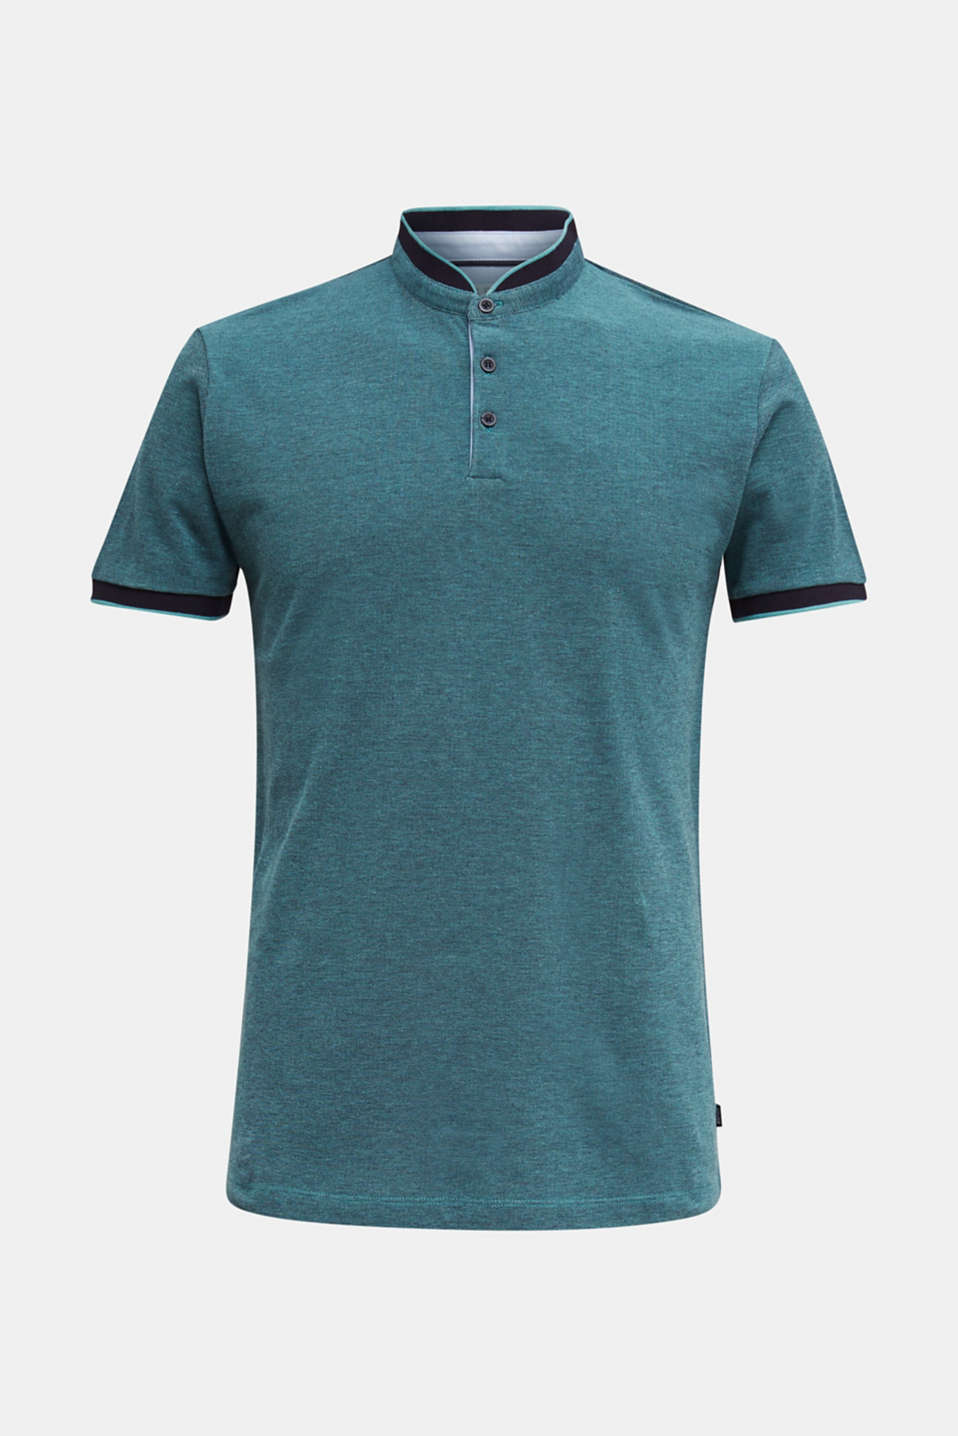 Piqué polo shirt with a stand-up collar, TEAL GREEN 2, detail image number 6